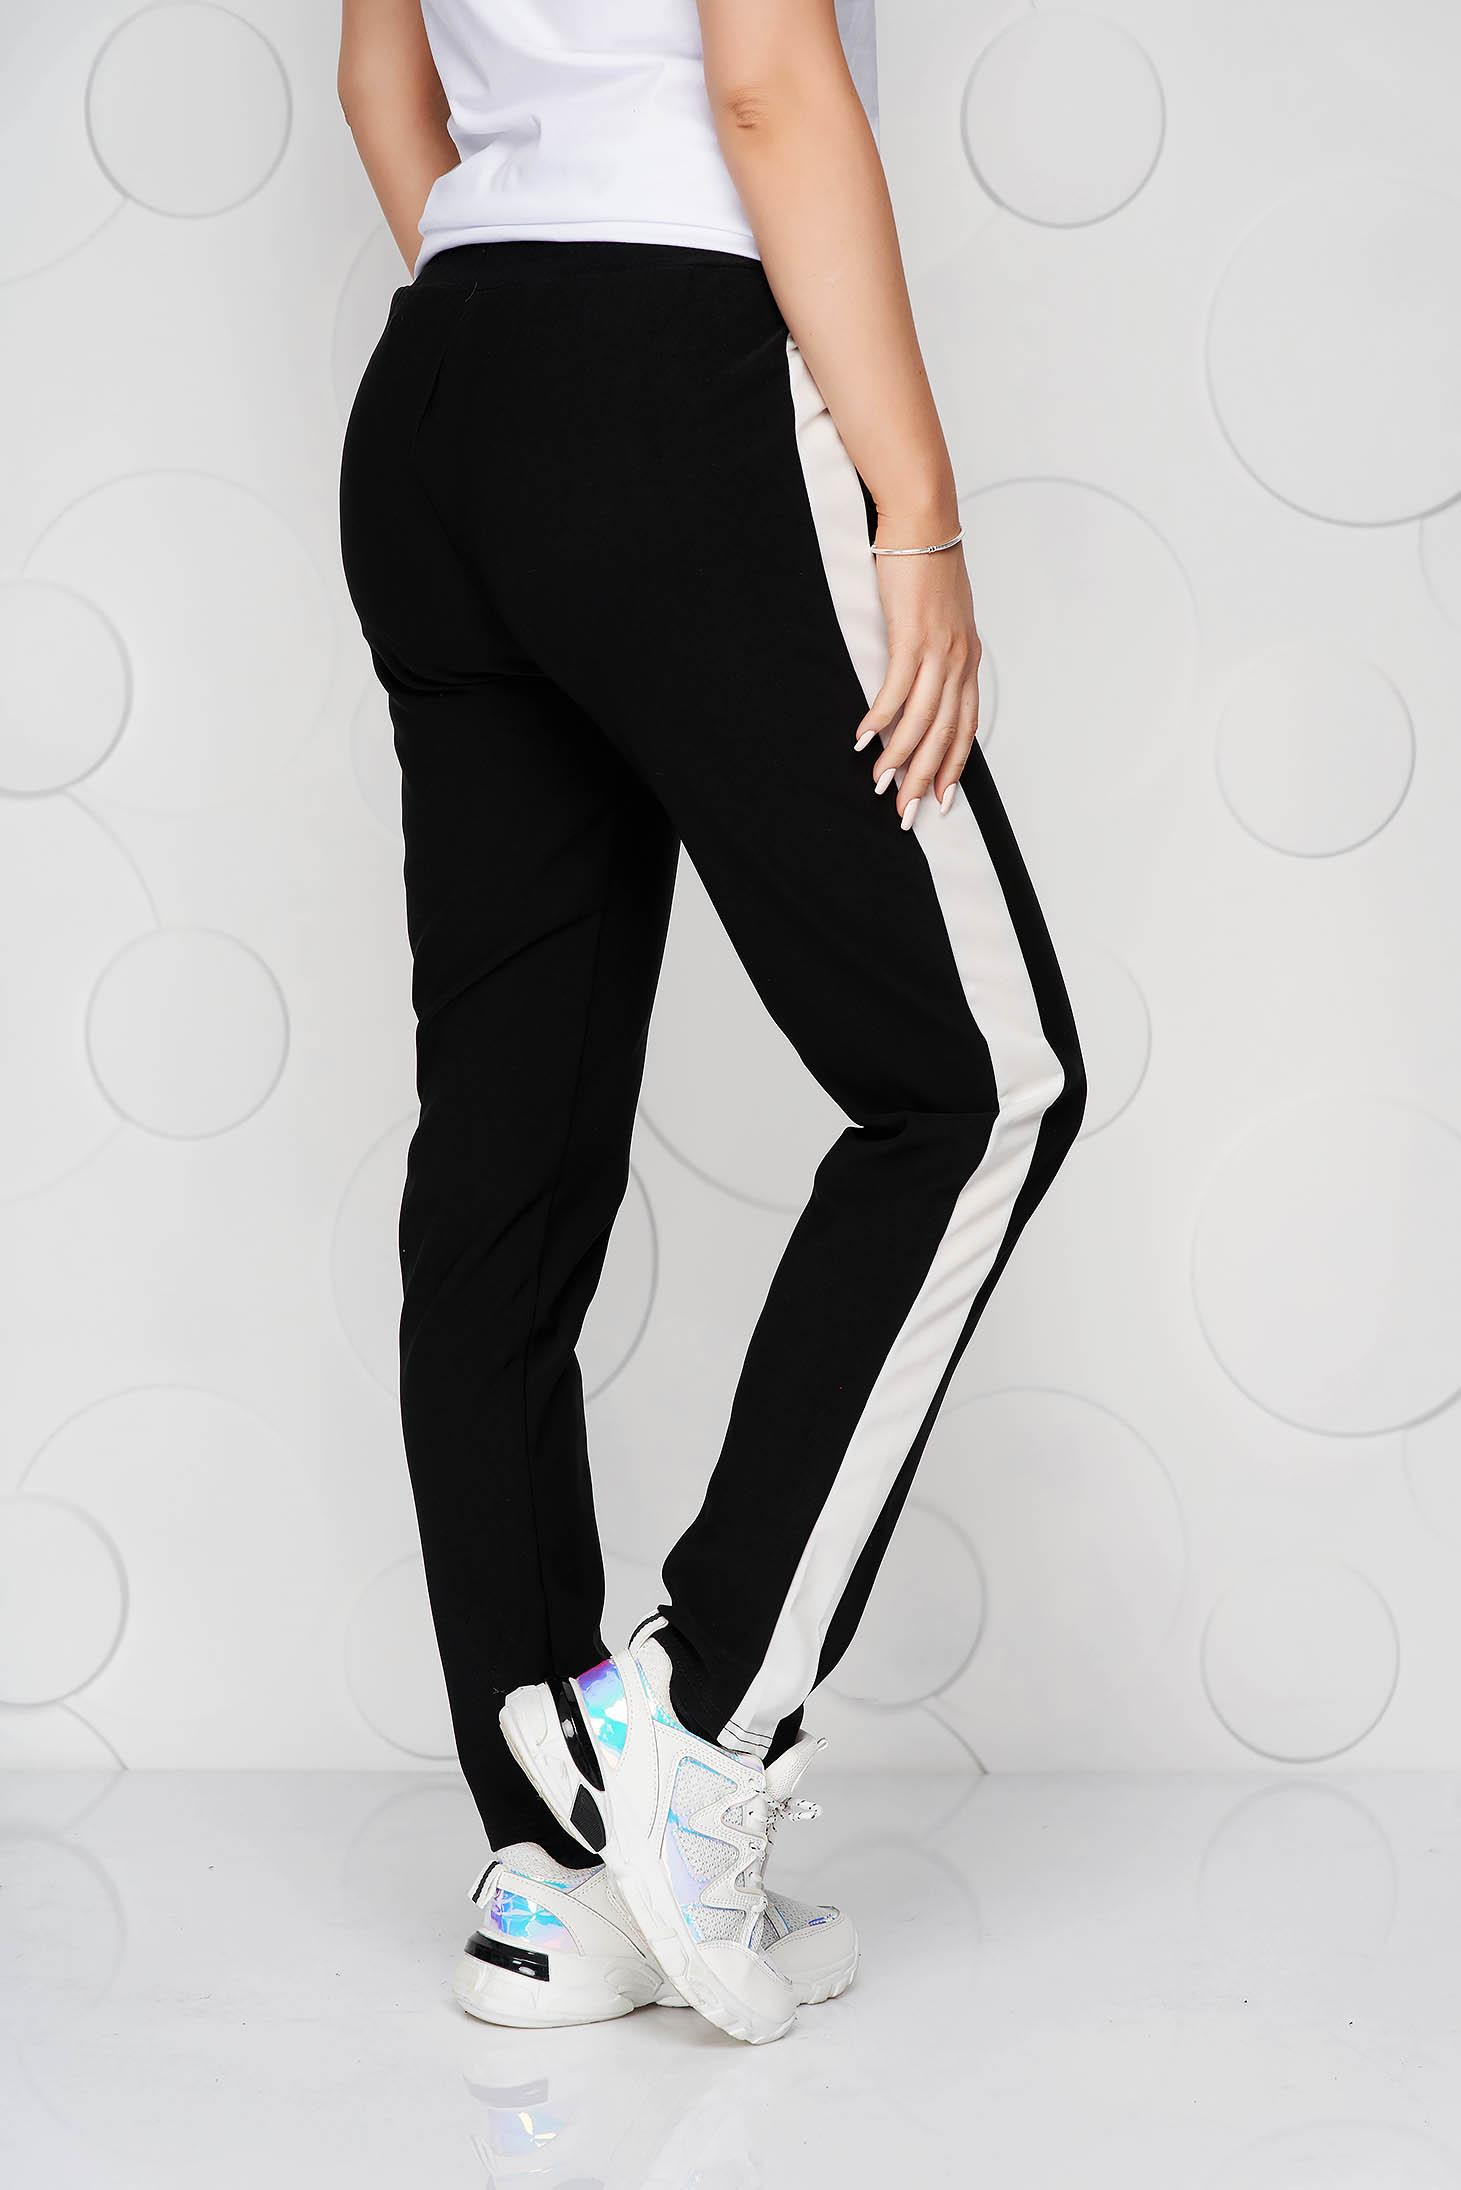 White trousers casual with pockets with elastic waist is fastened around the waist with a ribbon straight